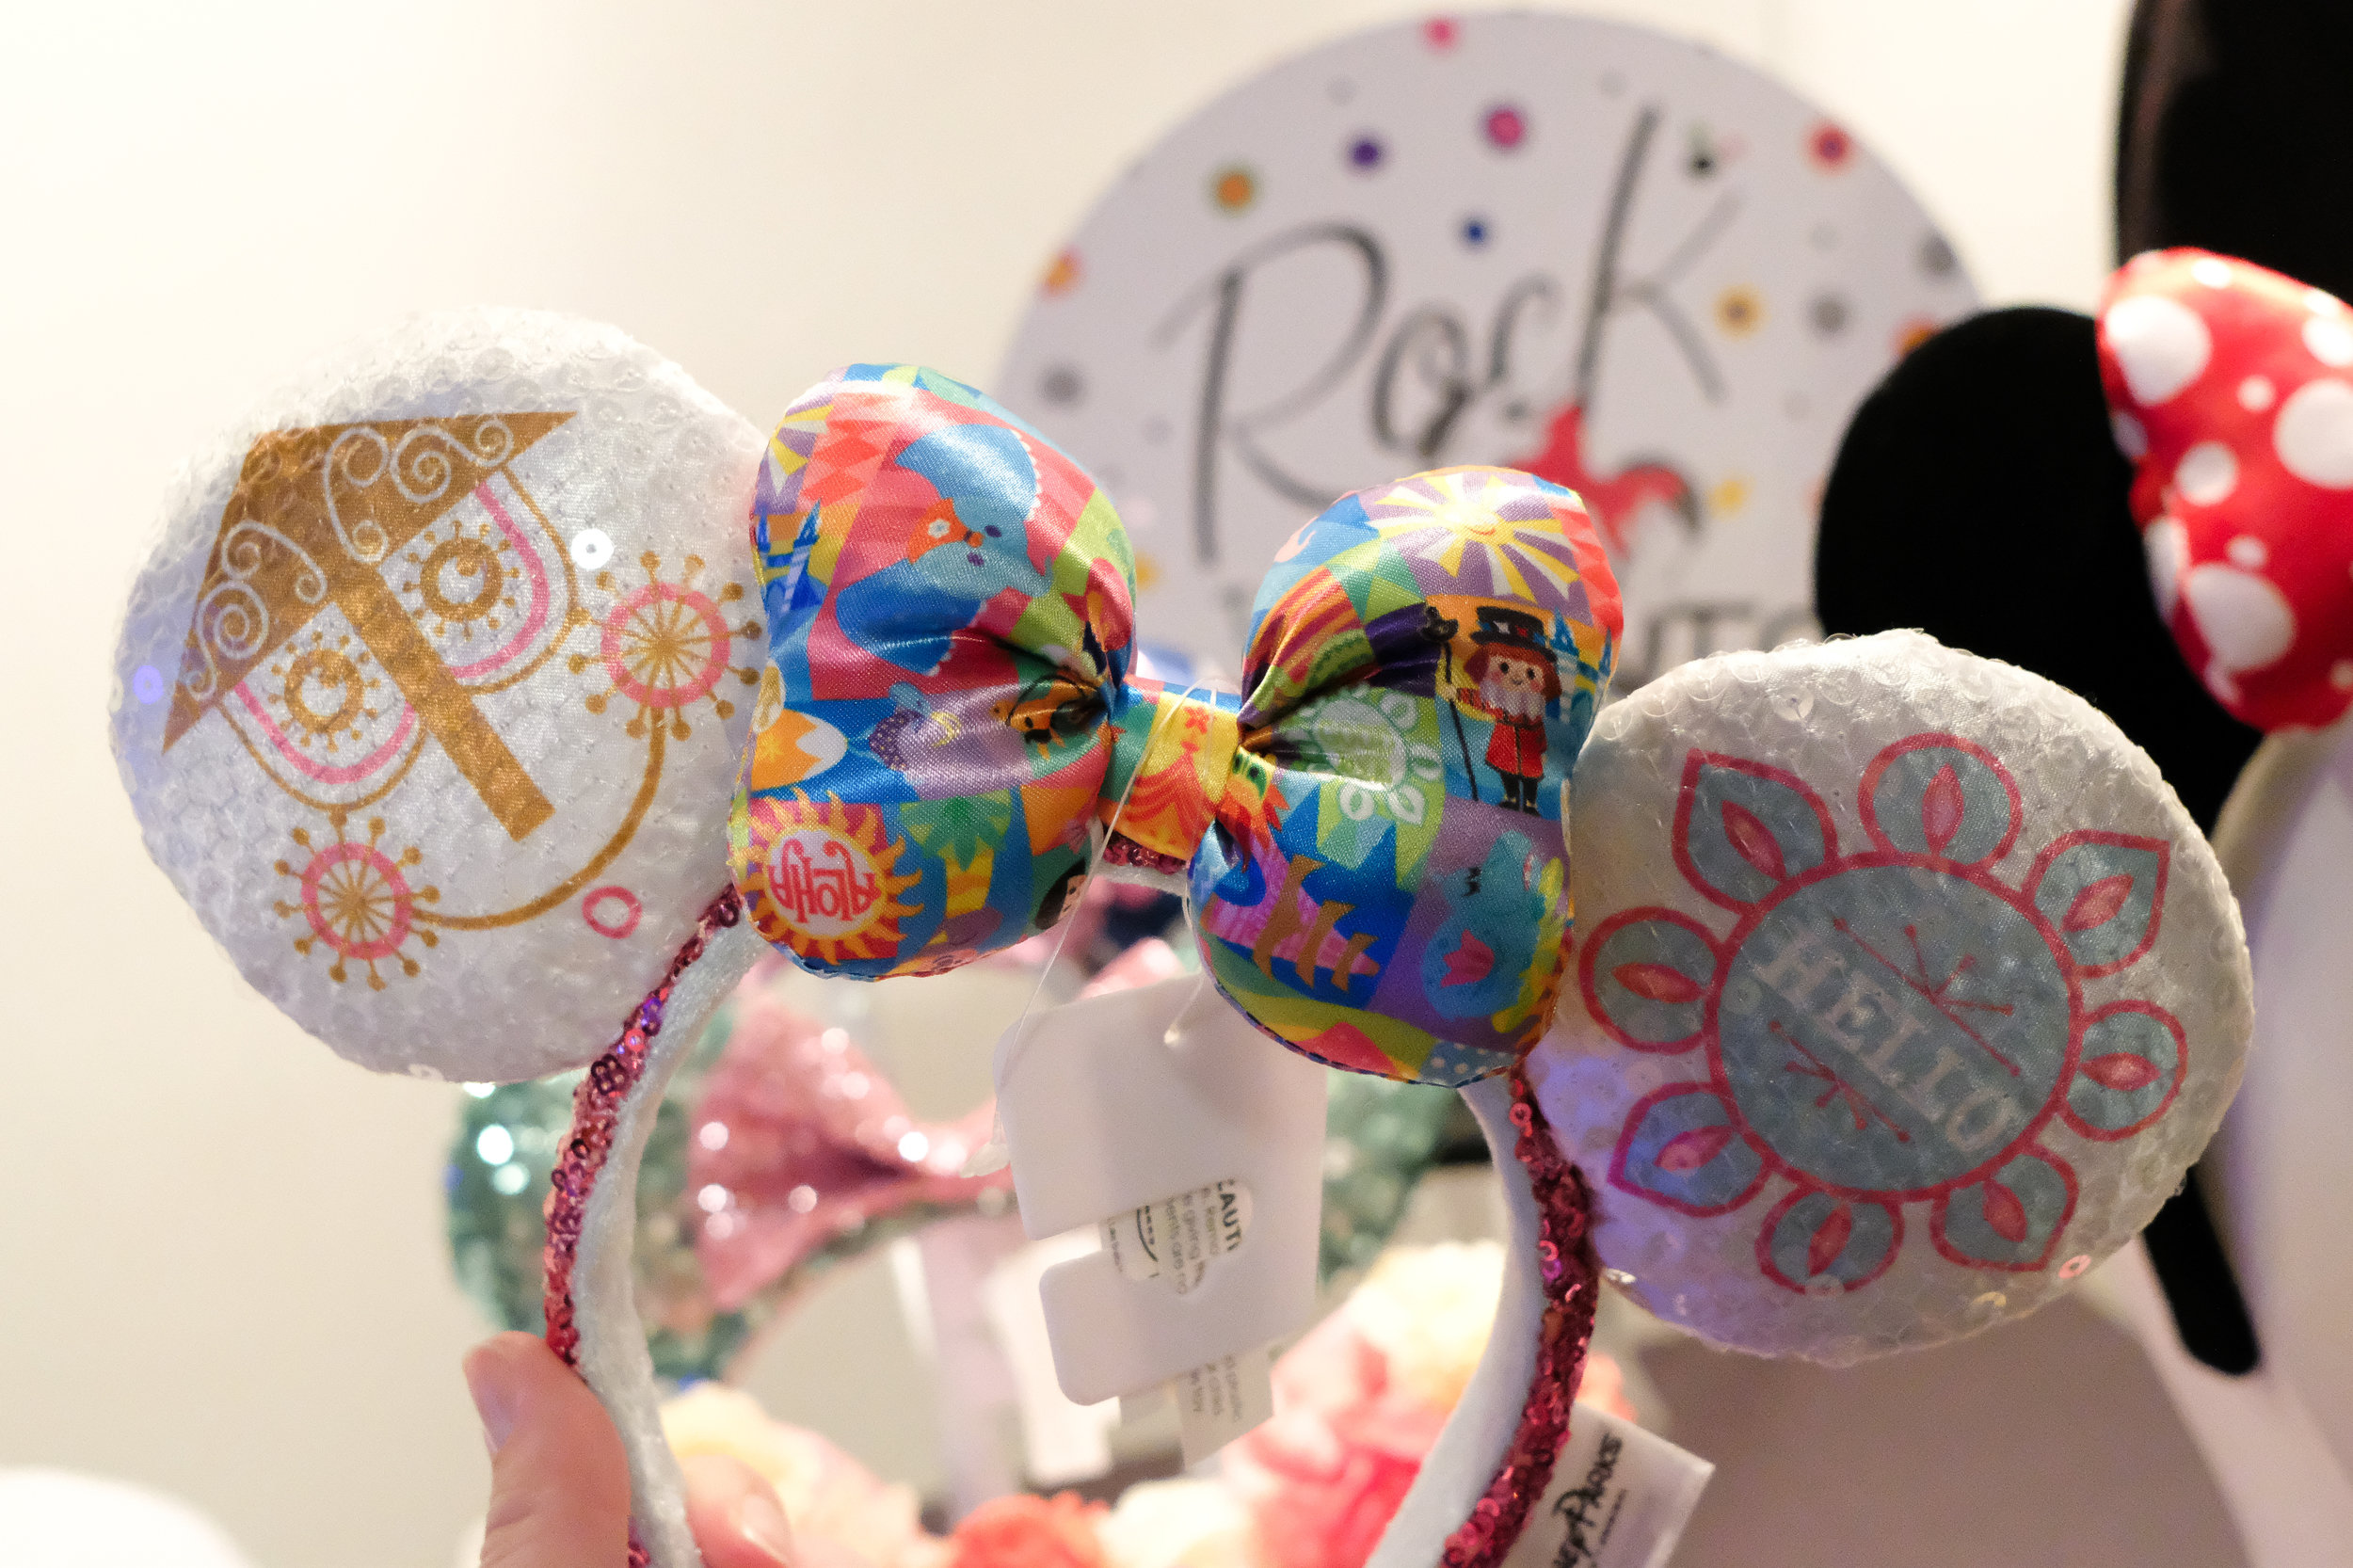 New Small World Ears coming to Disney Parks